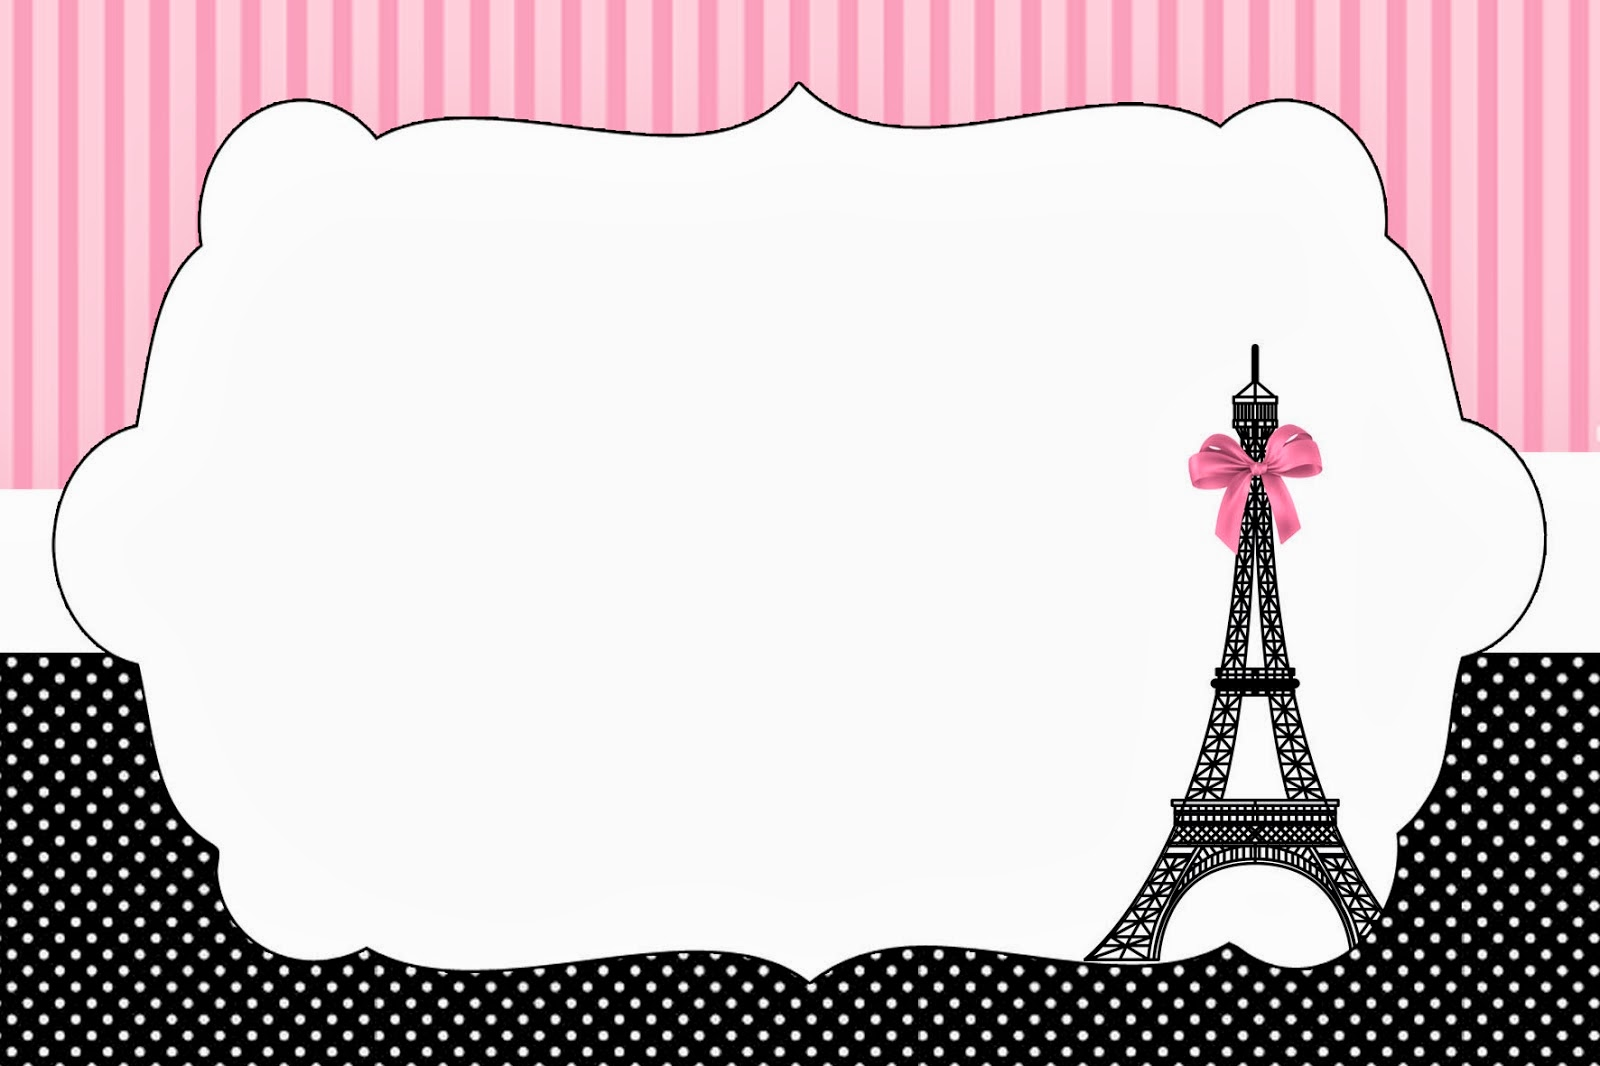 Free Paris printable happy birthday banner. This x7-inch bunting banner features pink and white stripes spelling out Happy Birthday, as well as 2 banners with Eiffel tower images. This is a great addition to any Paris themed girl's birthday party.